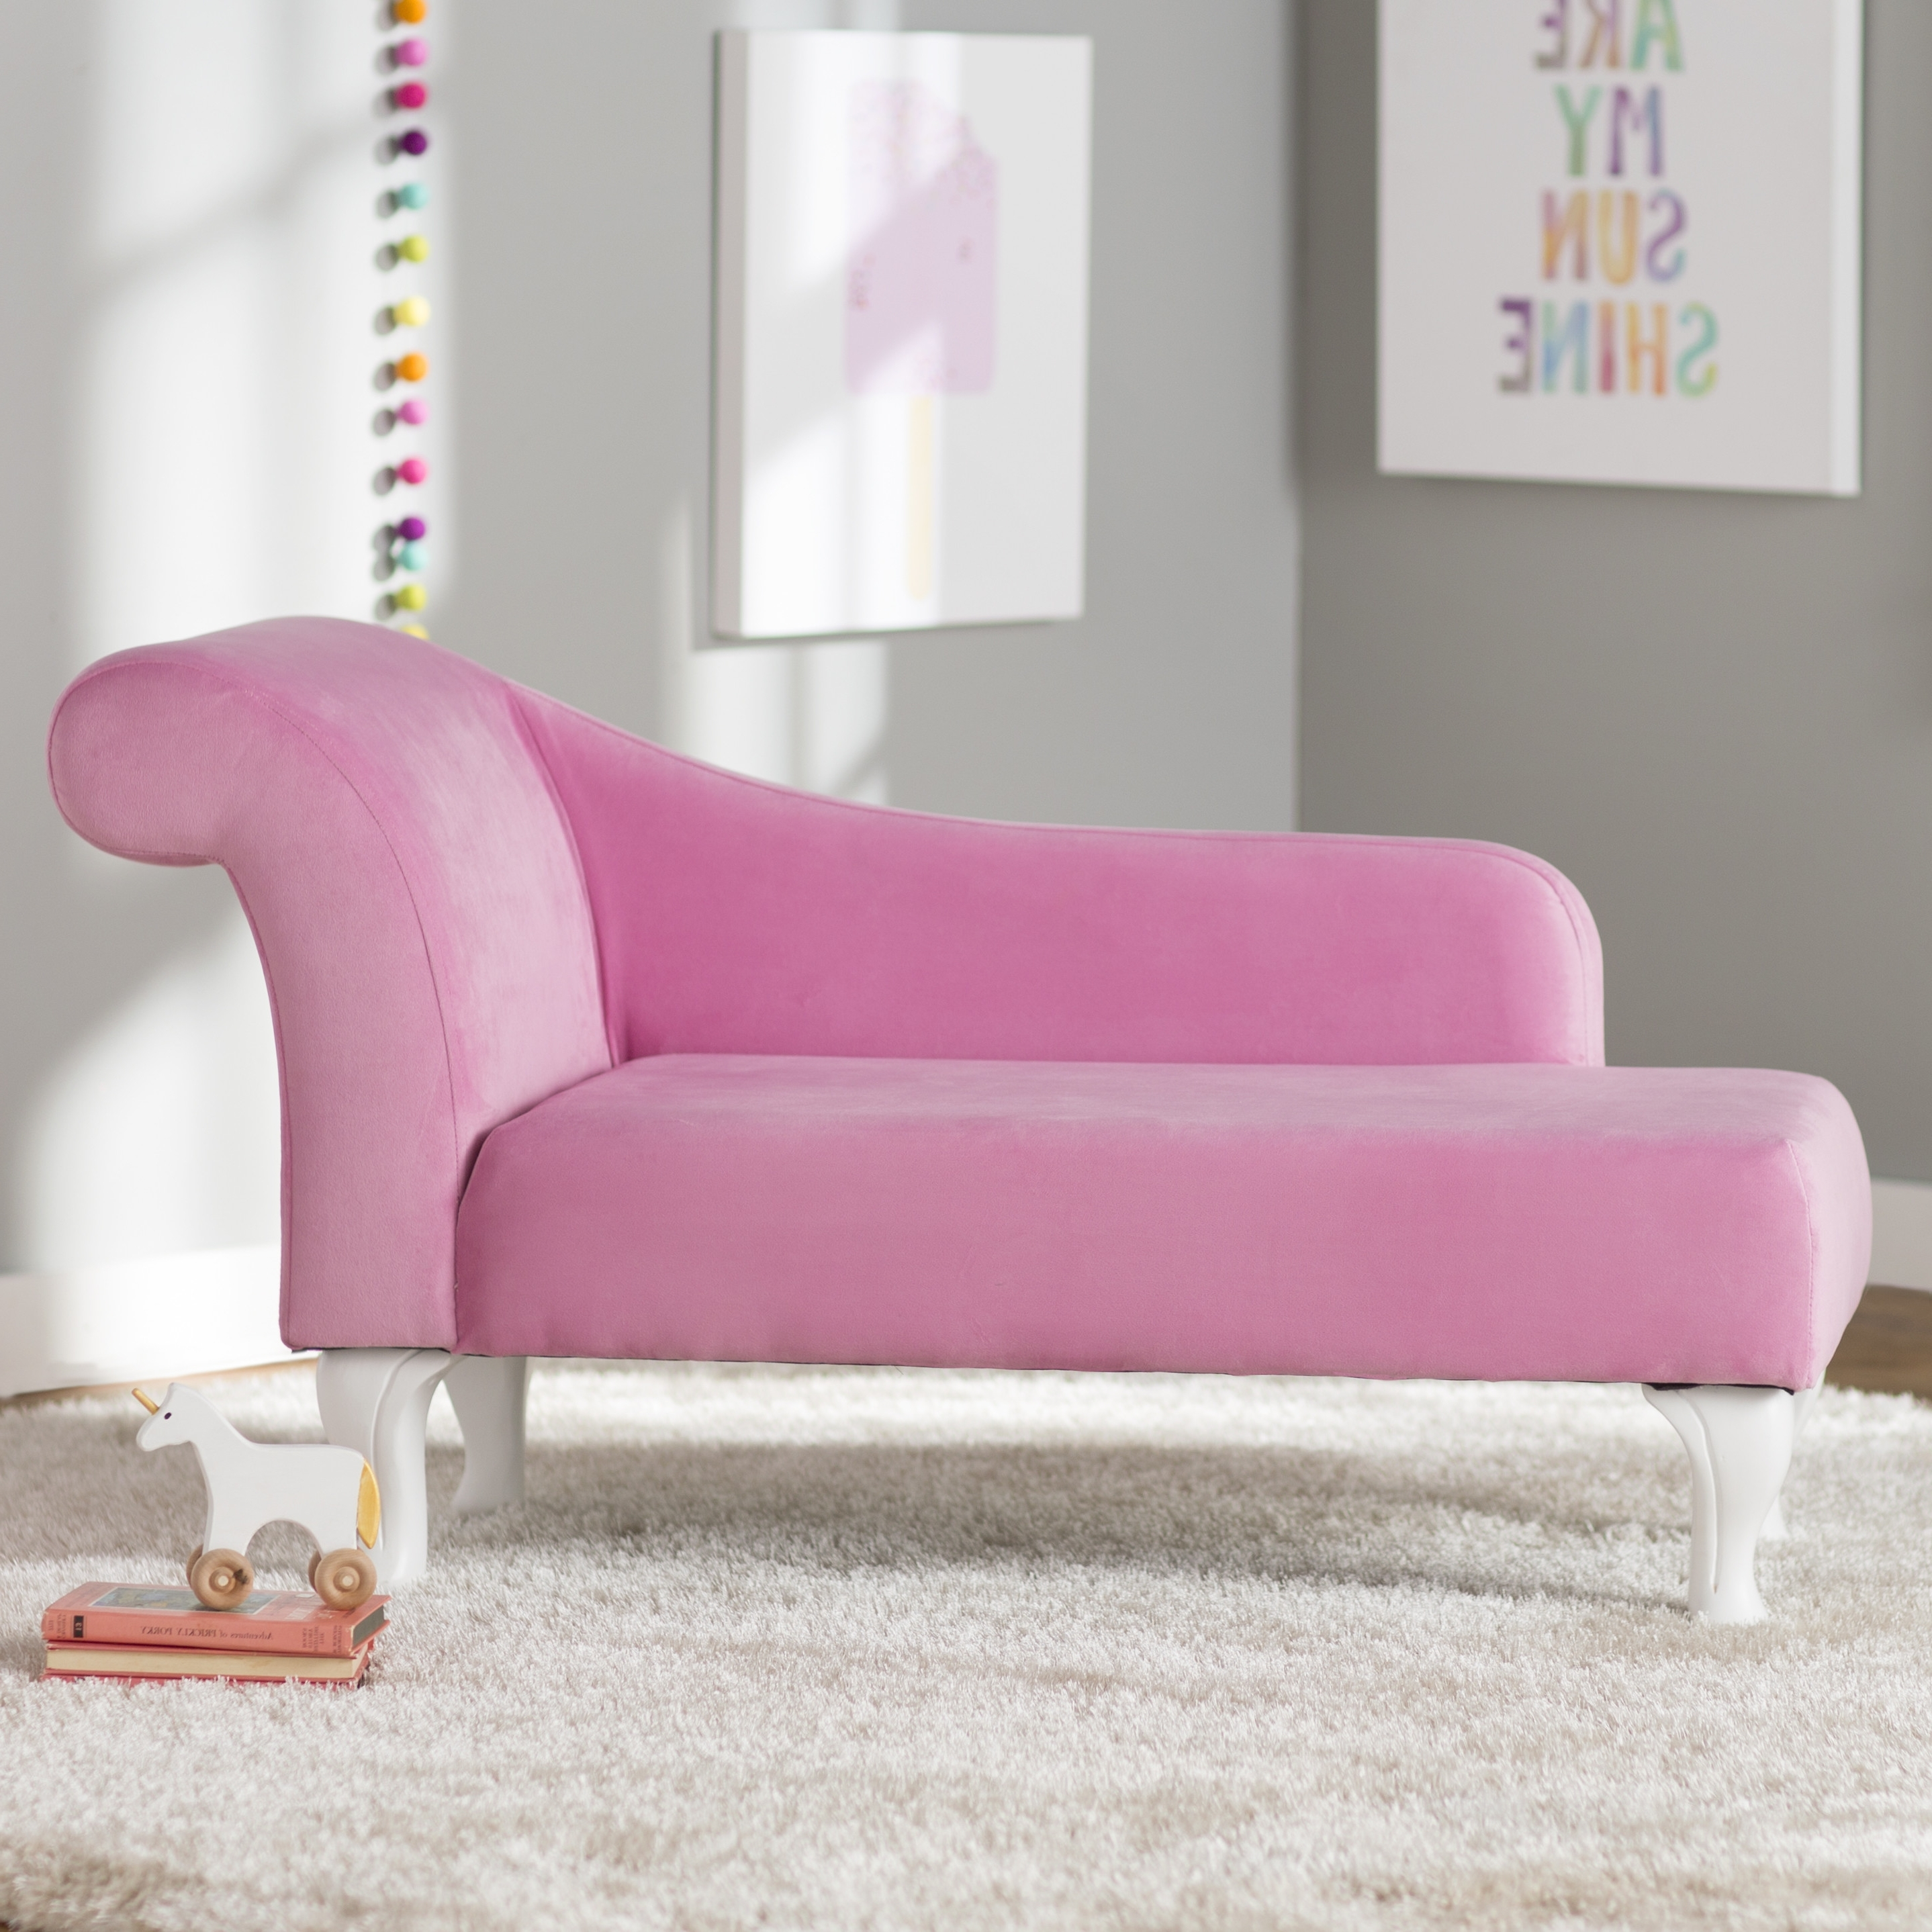 48 Kids Chaise Lounge, Kids Seating Wayfair – Warehousemold Regarding Current Children's Chaise Lounges (View 8 of 15)